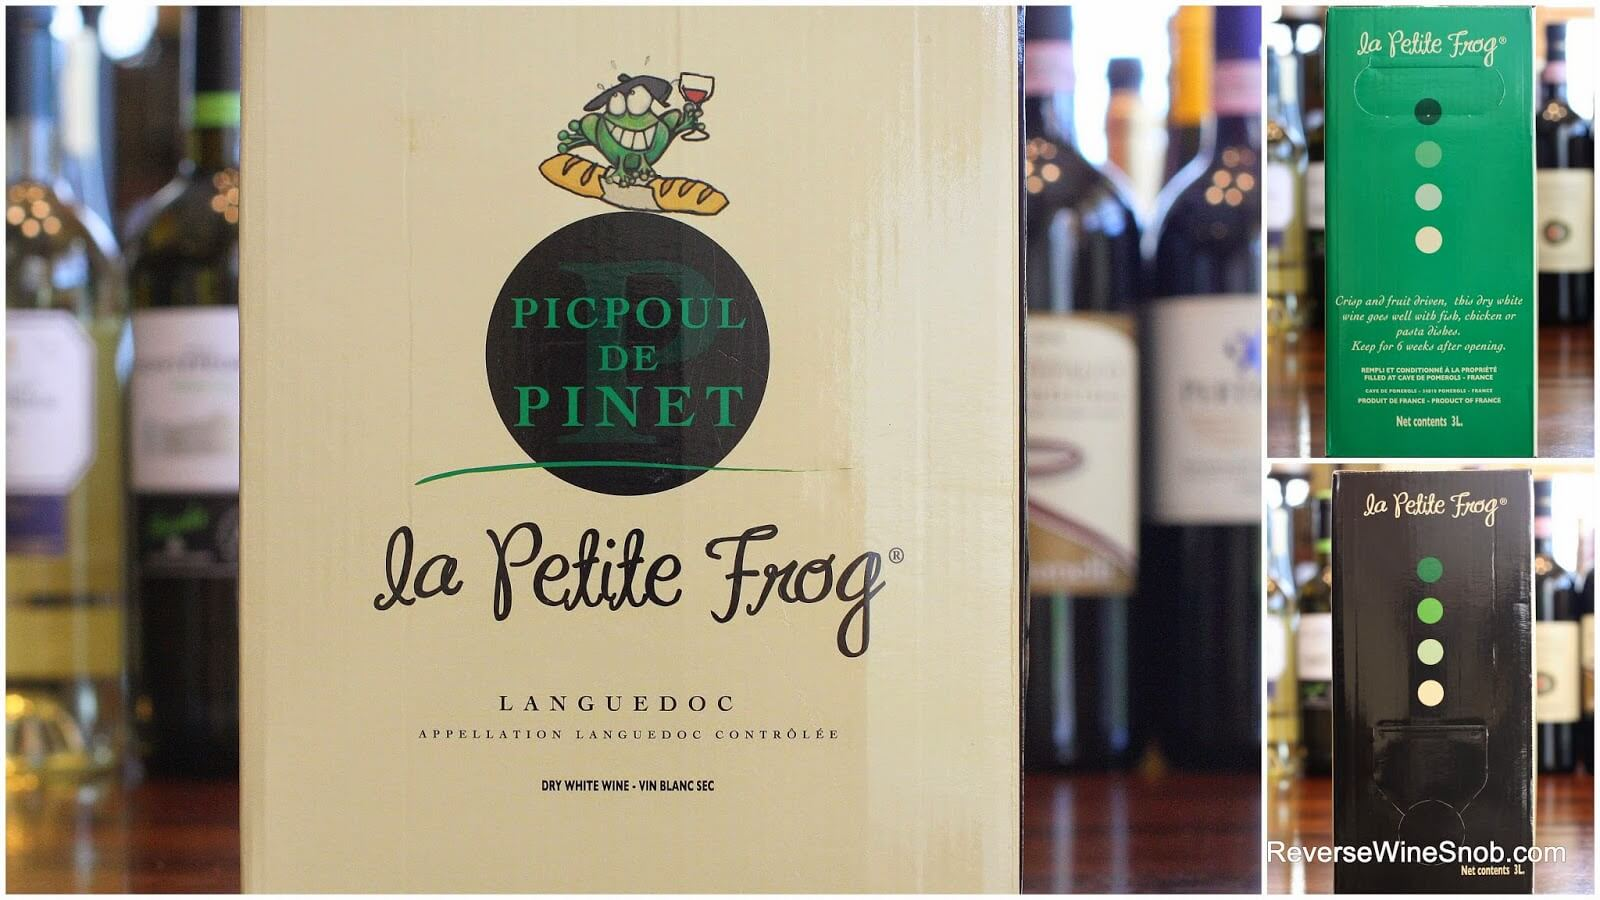 2013-la-petite-frog-picpoul-de-pinet-collage